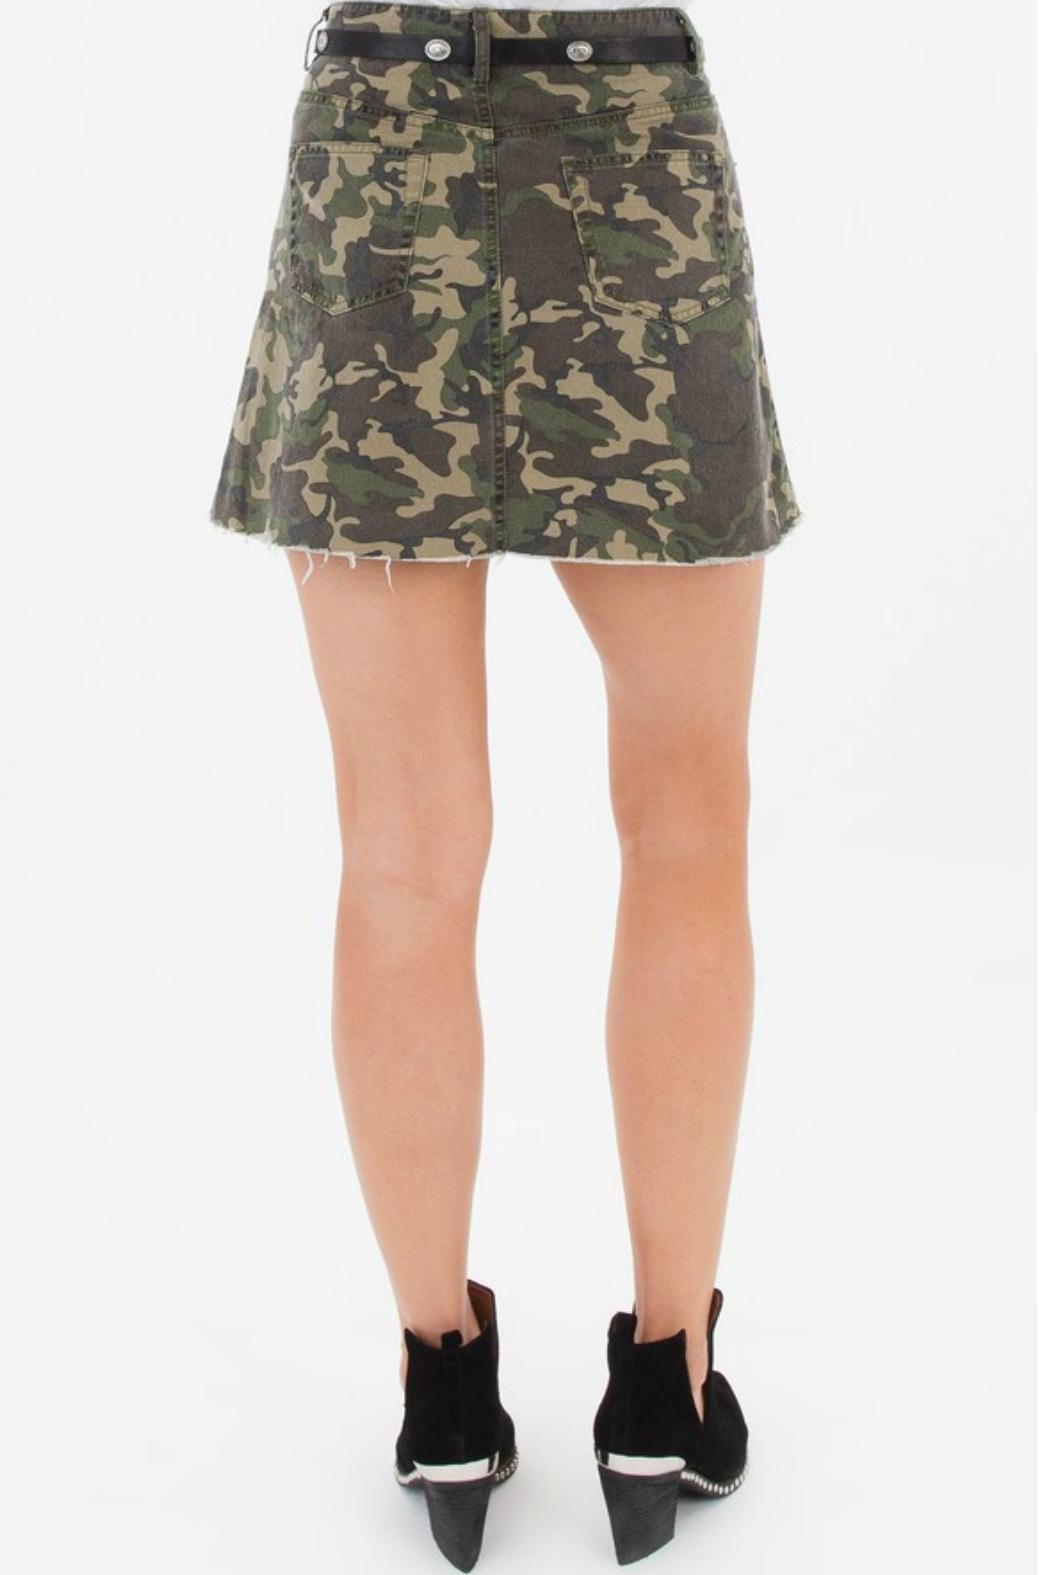 White Crow Battlefield Camo Skirt - Side Cropped Image